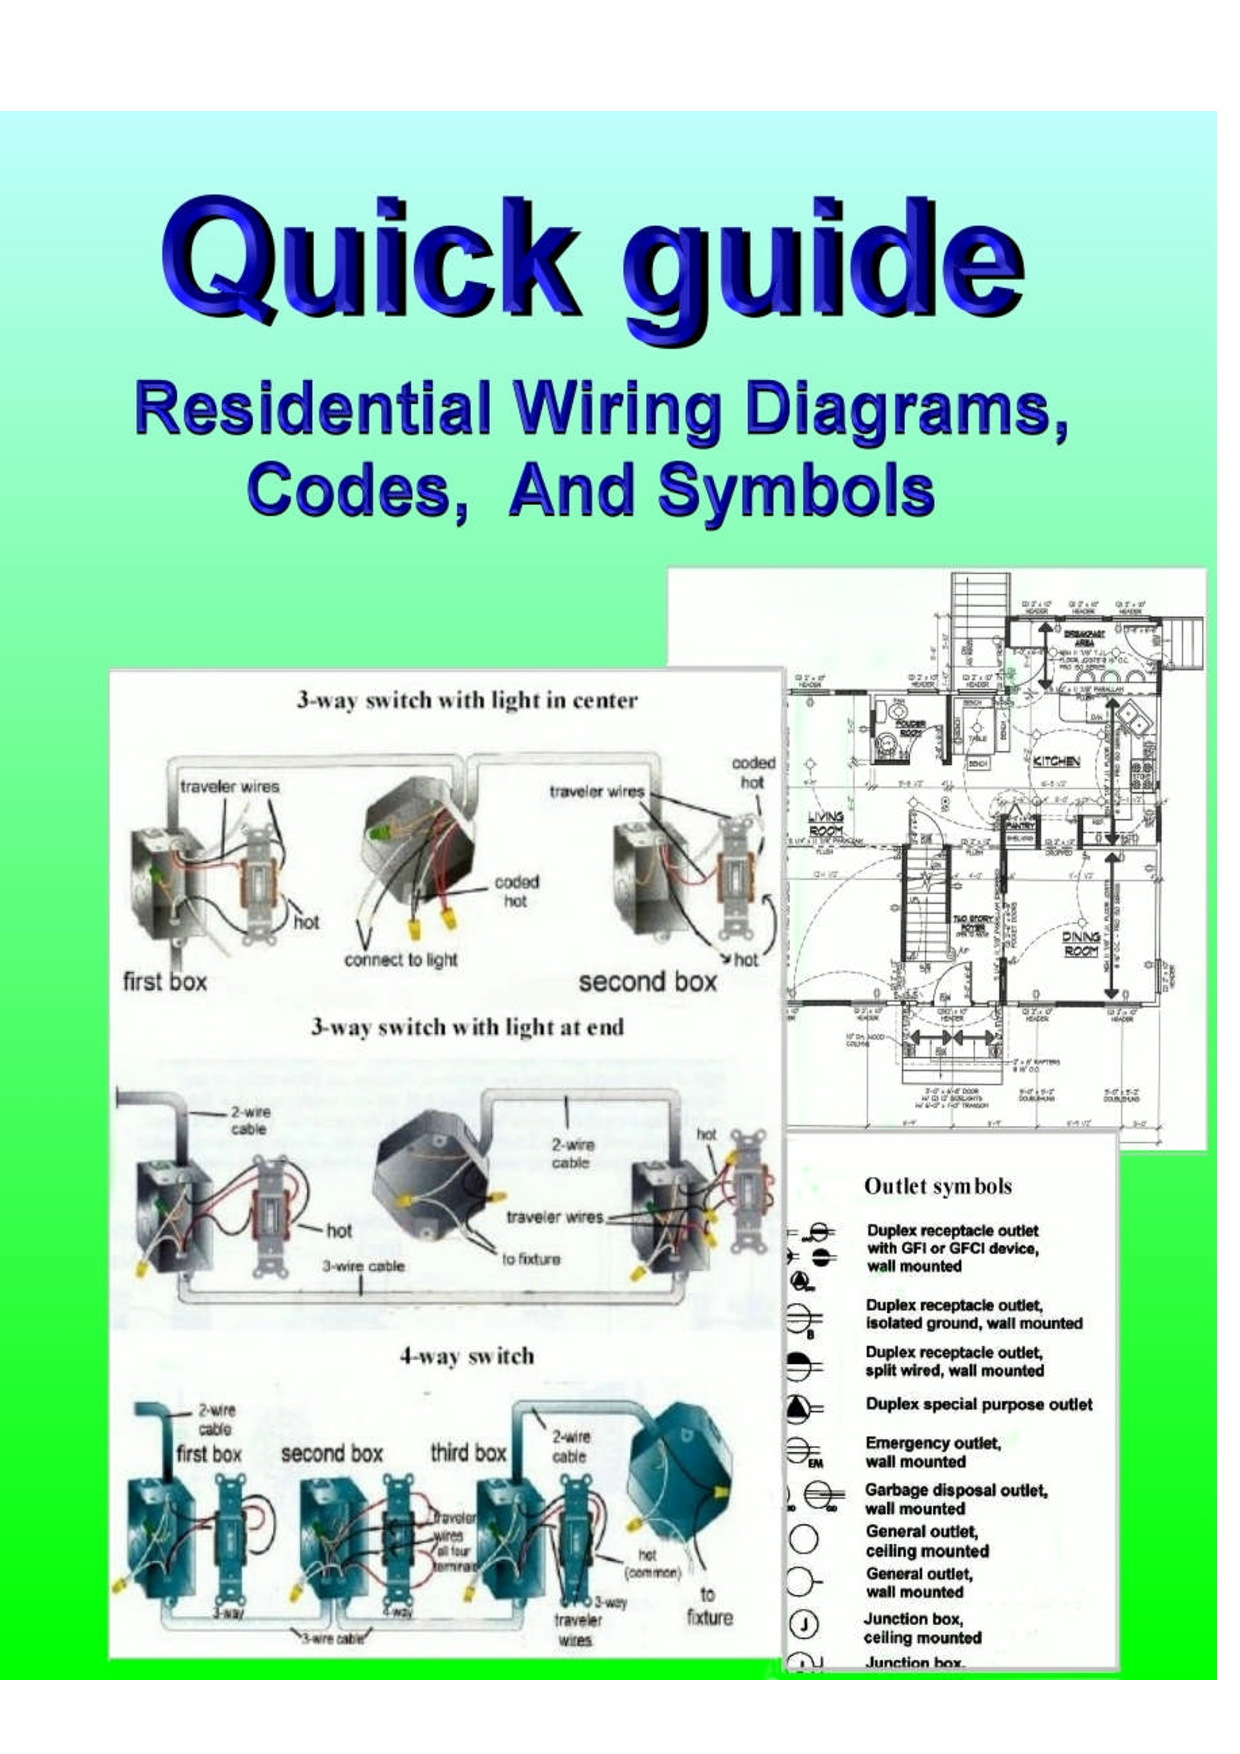 Home Electrical Wiring Diagramspdf Download Legal Documents 39 An Outlet On A Switch Pages With Many Diagrams And Illustrations Step By Guide